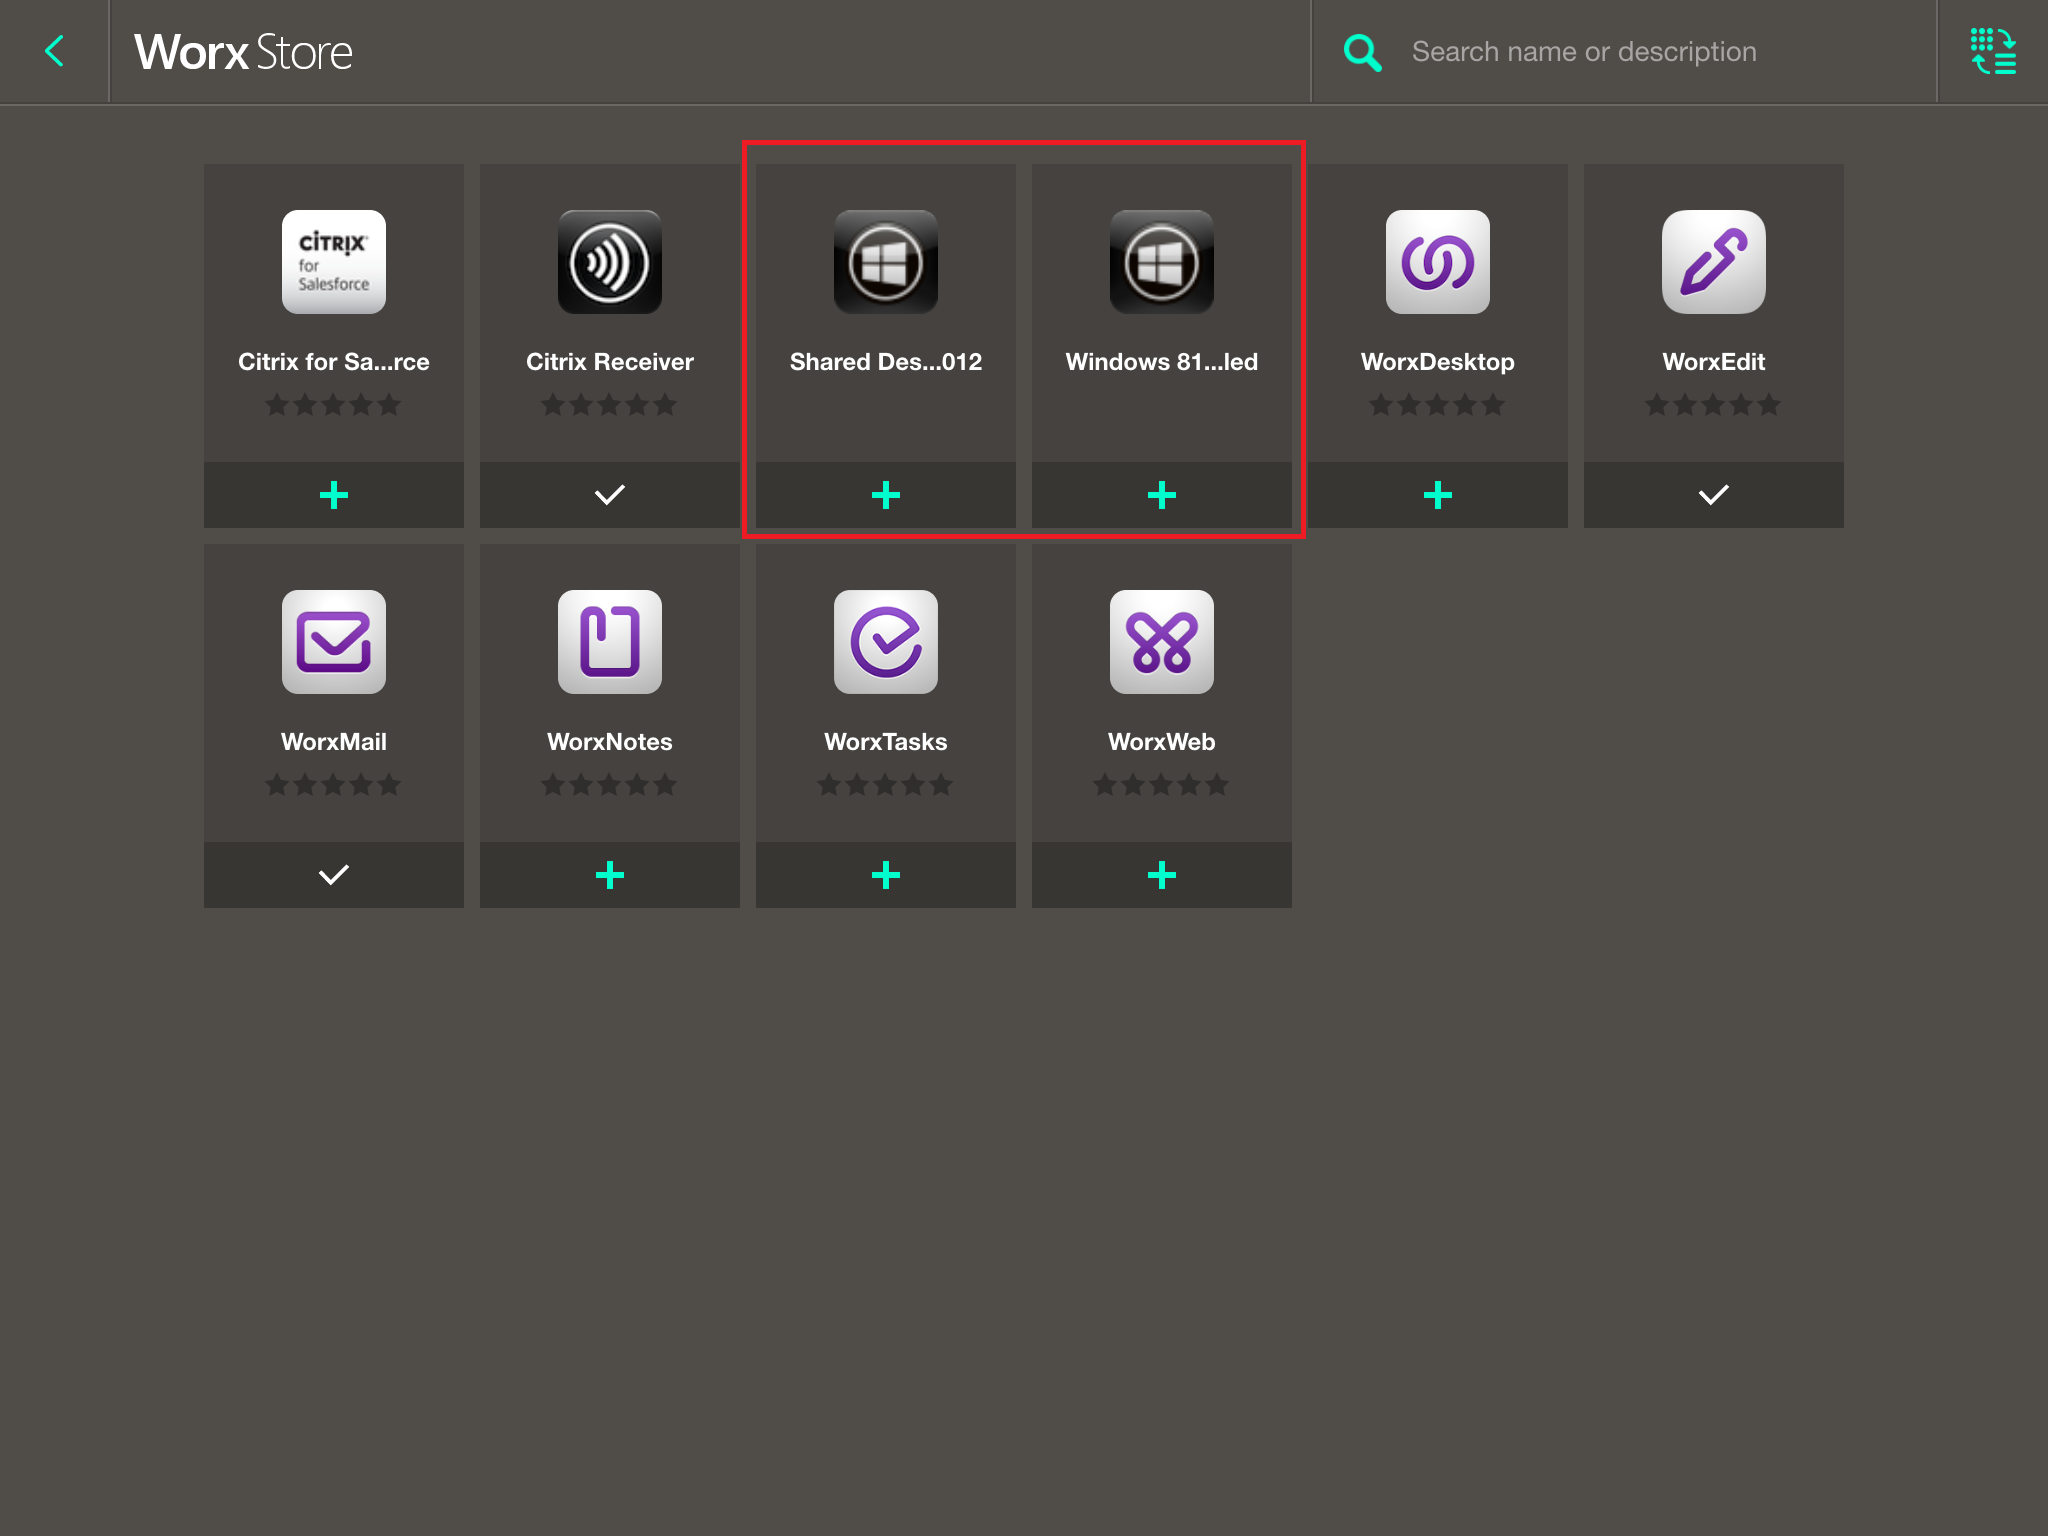 How to integrate Citrix XenApp / XenDesktop with Citrix